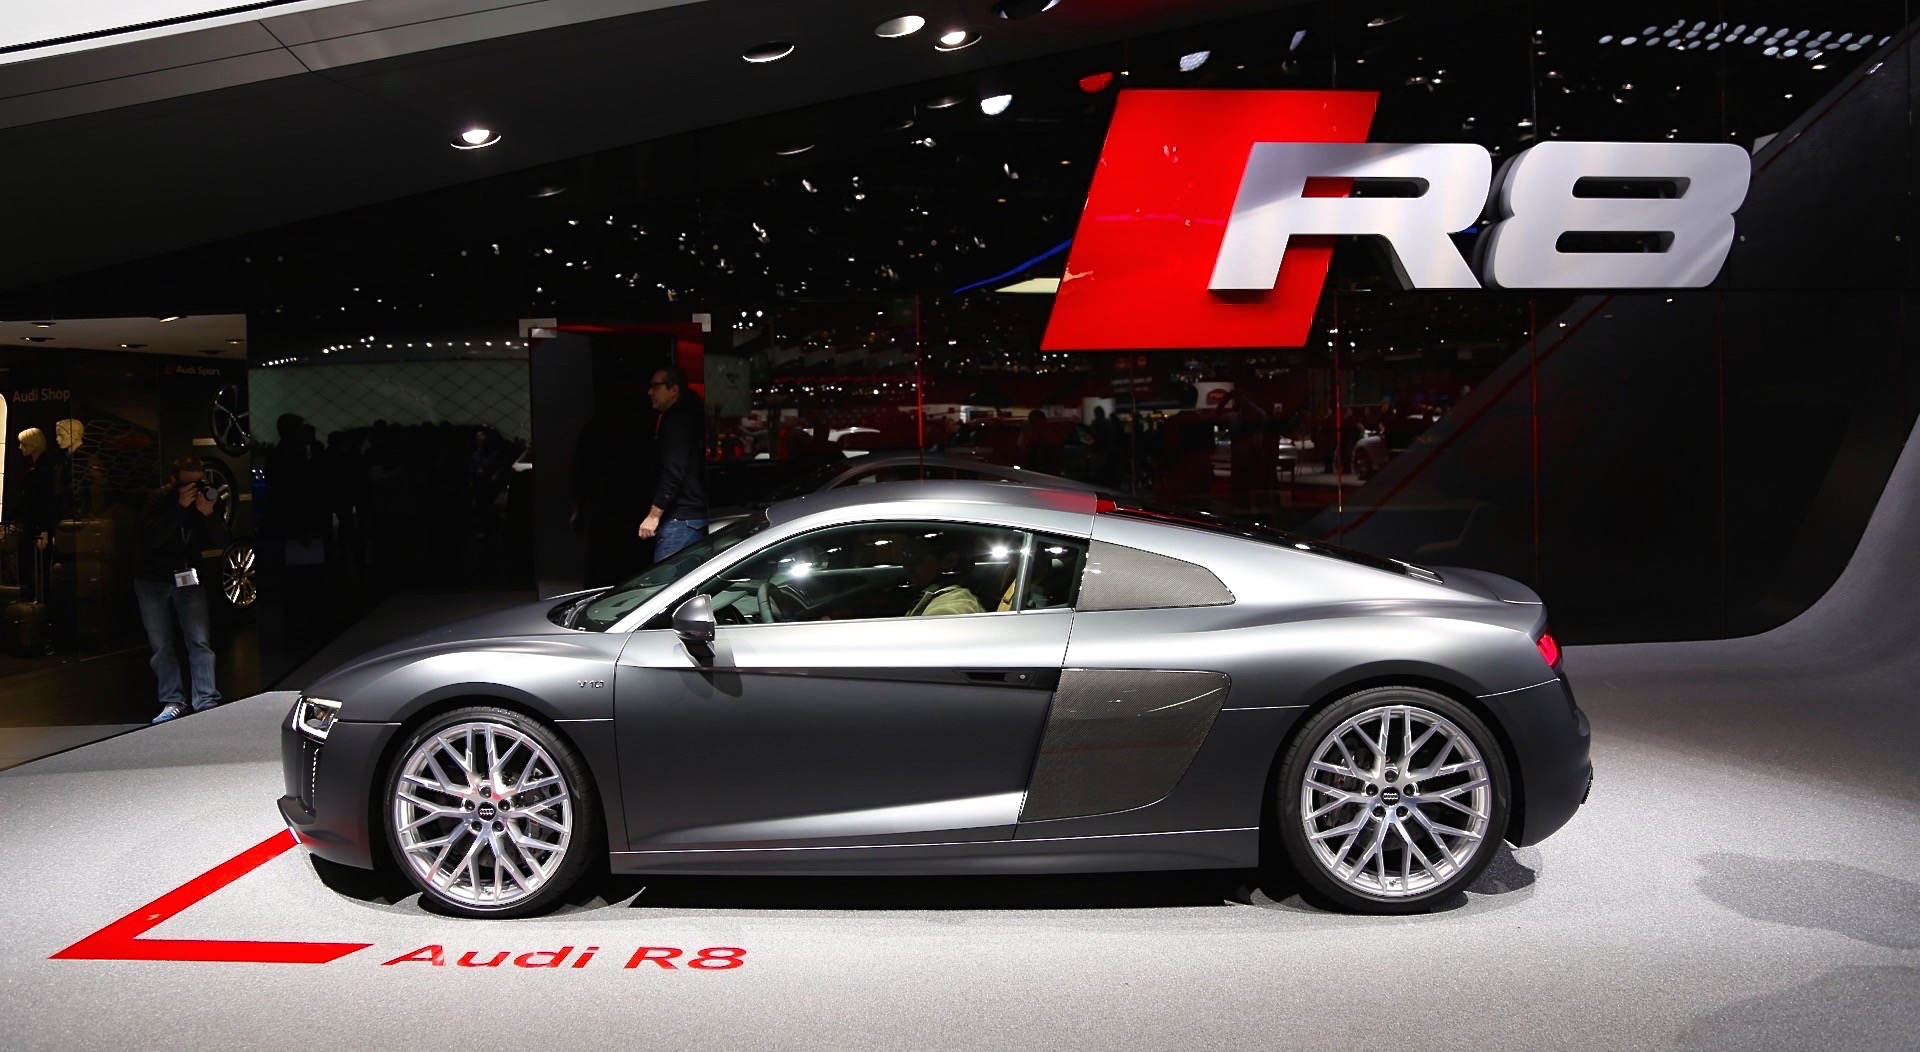 2017 audi r8 fully revealed live photos and video from geneva